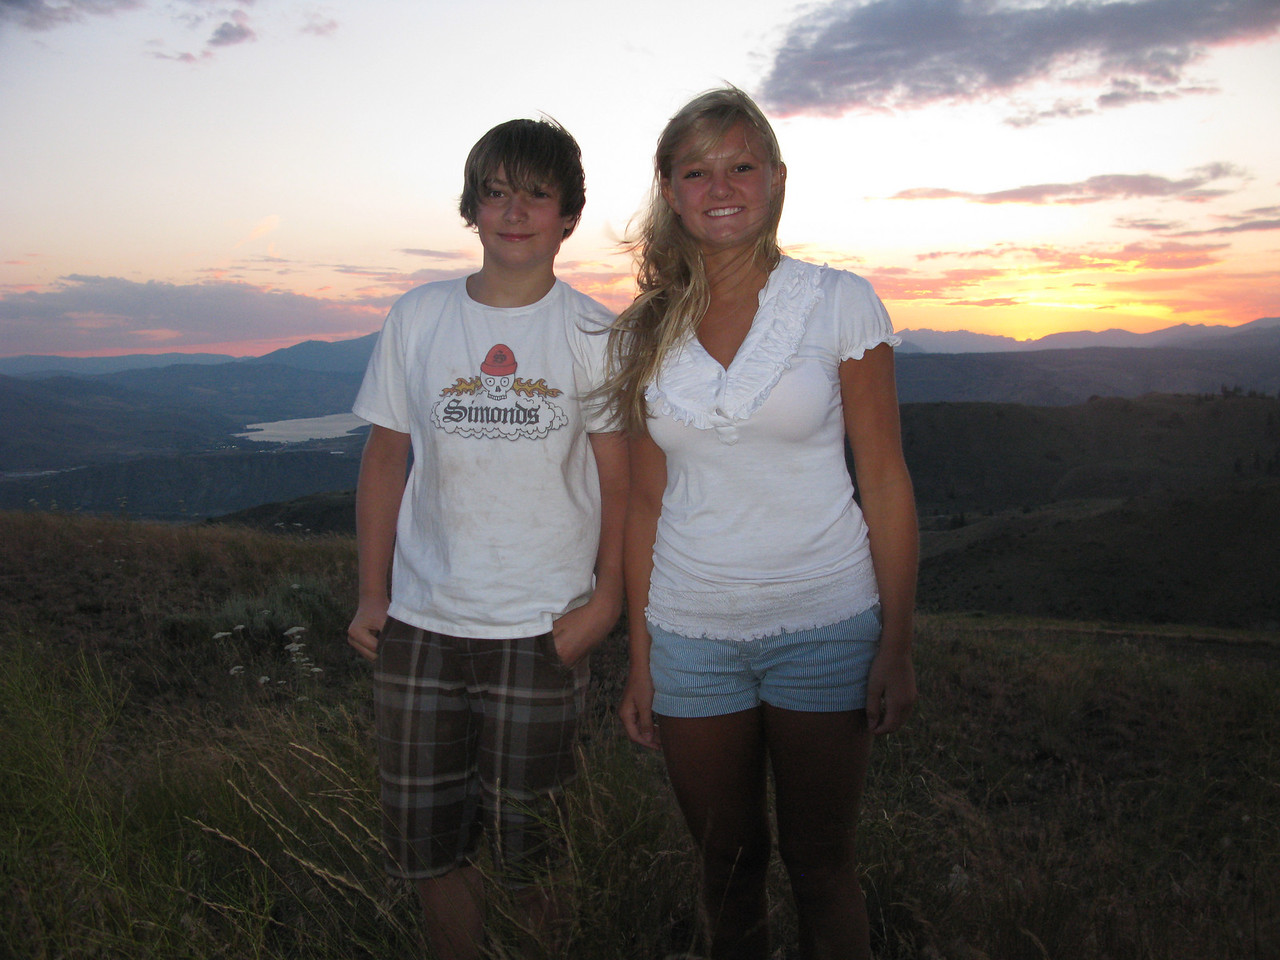 Neat one of the kids on the eastern rim of the columbia river gorge. Sunset and Lake Chelan in far background.